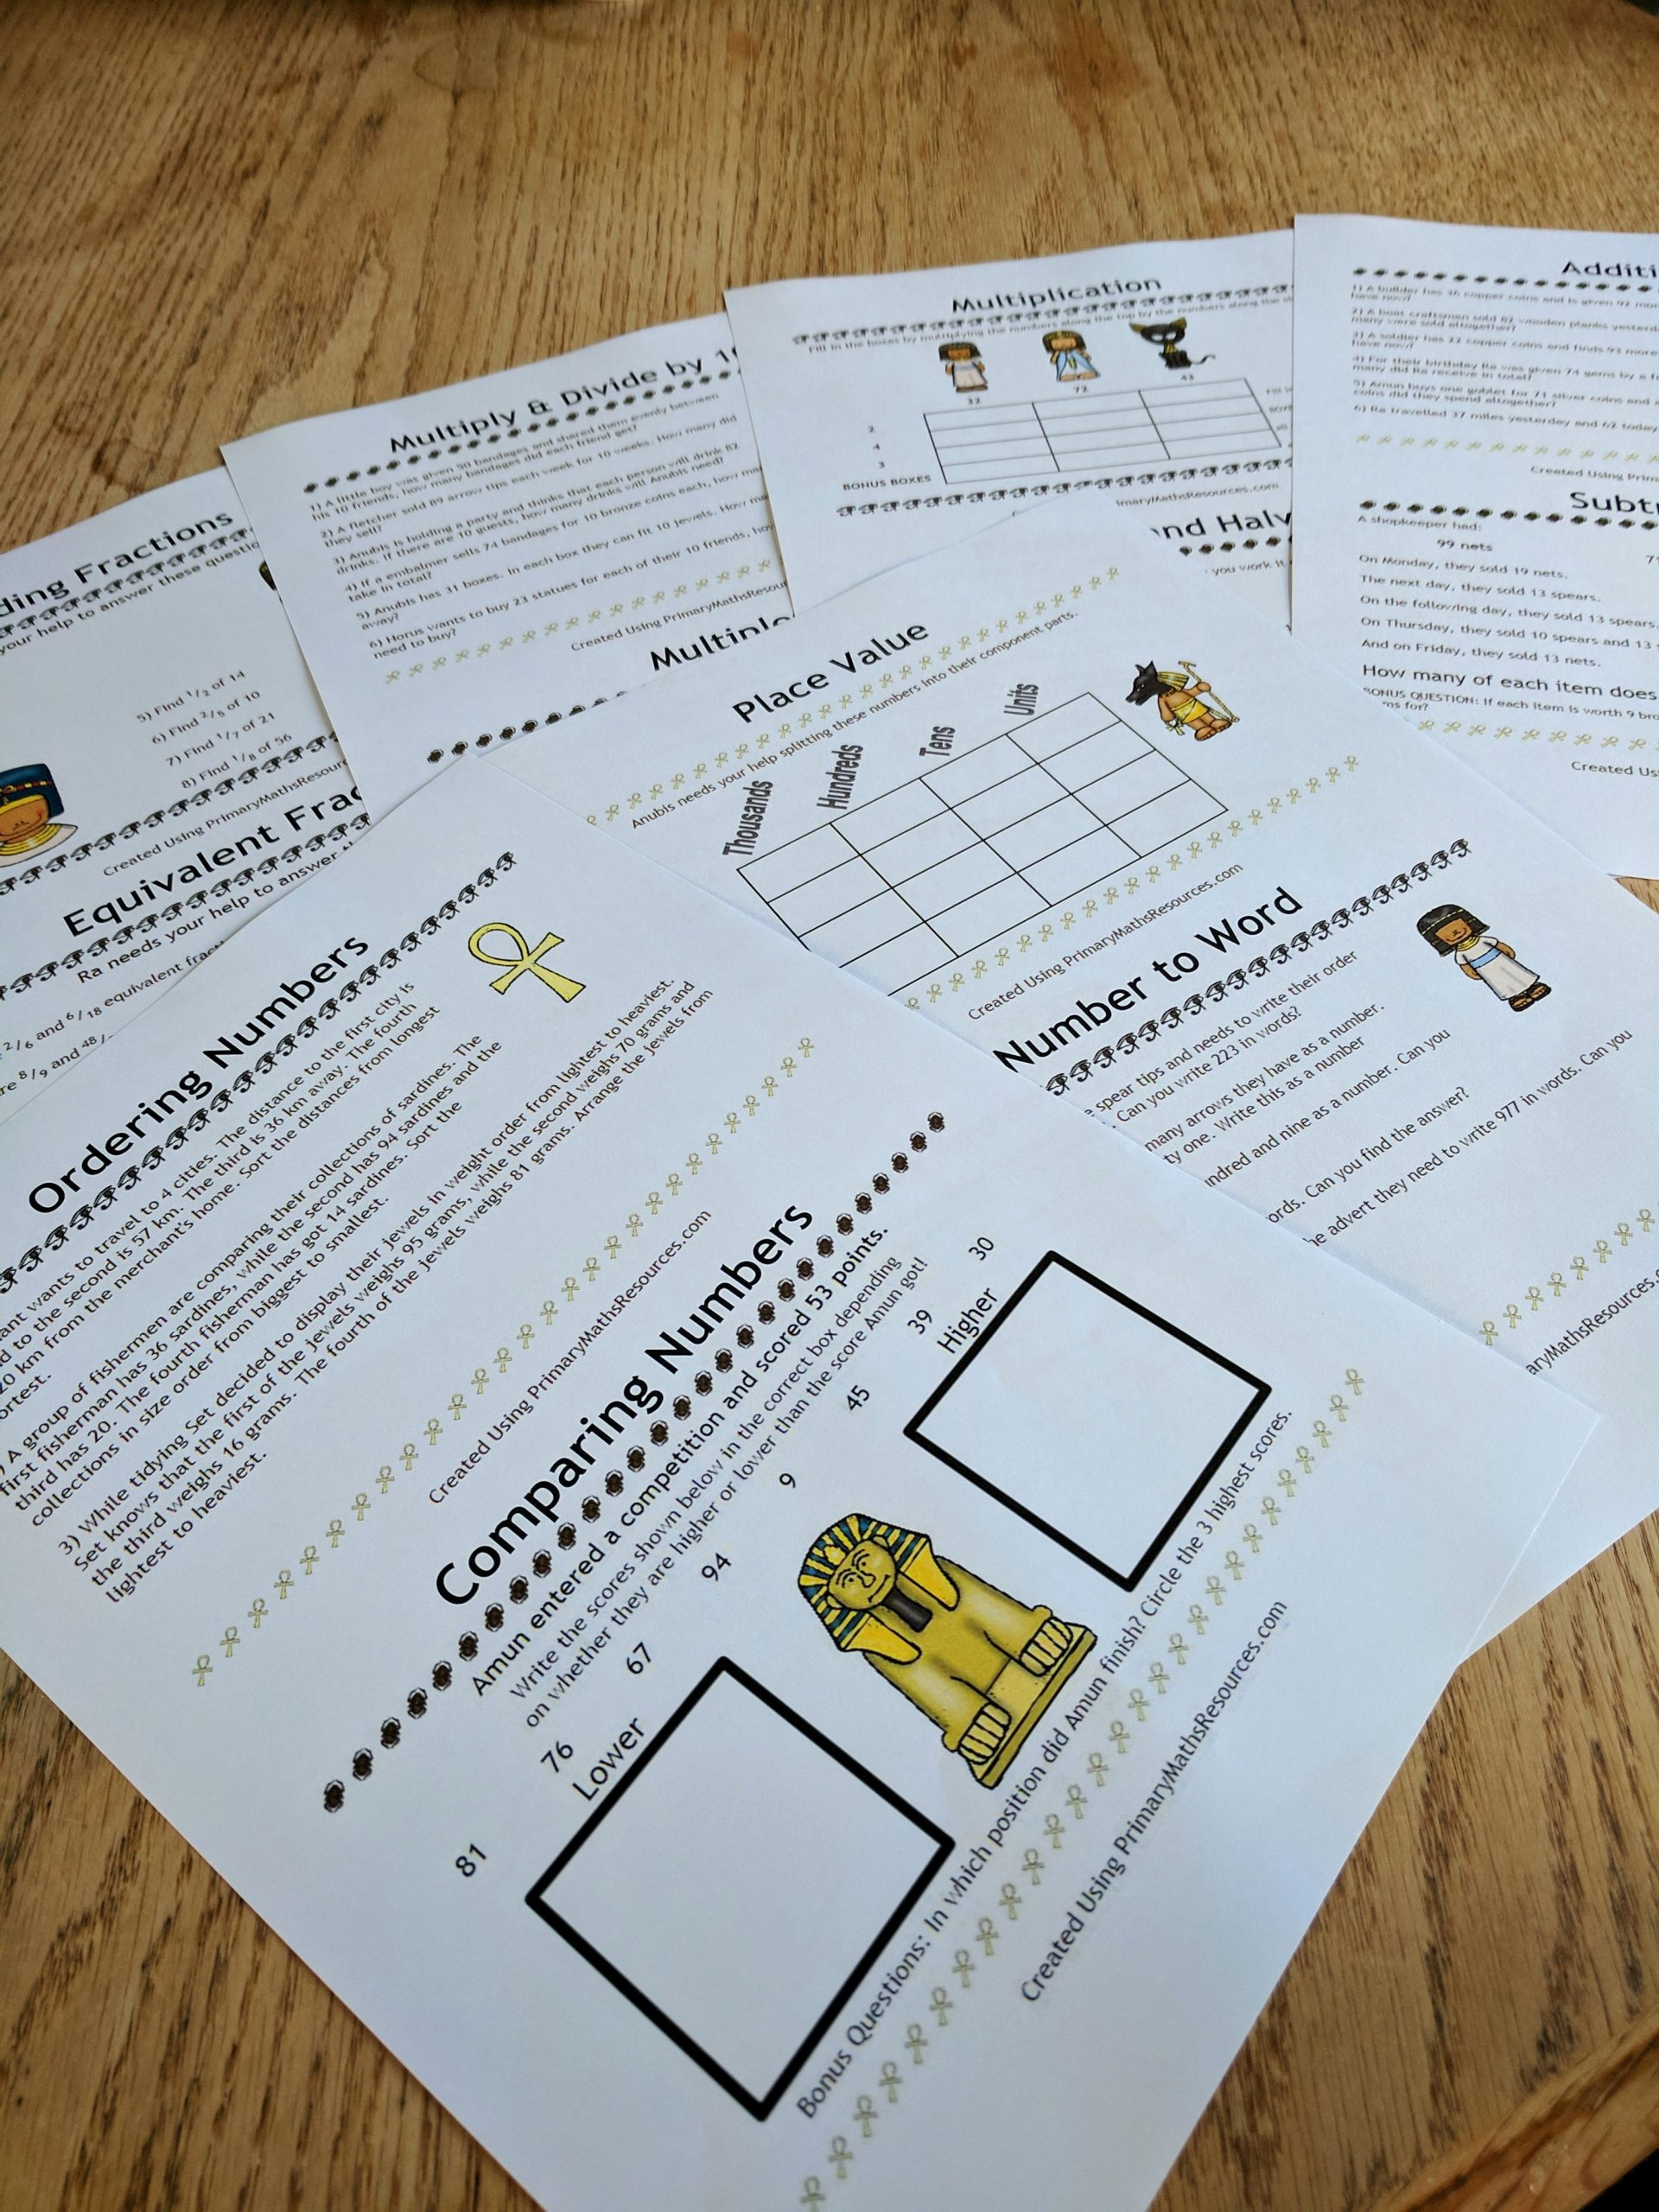 Theme Worksheets 2nd Grade Luxury Ancient Egyptian themed Maths Worksheets 2nd Grade